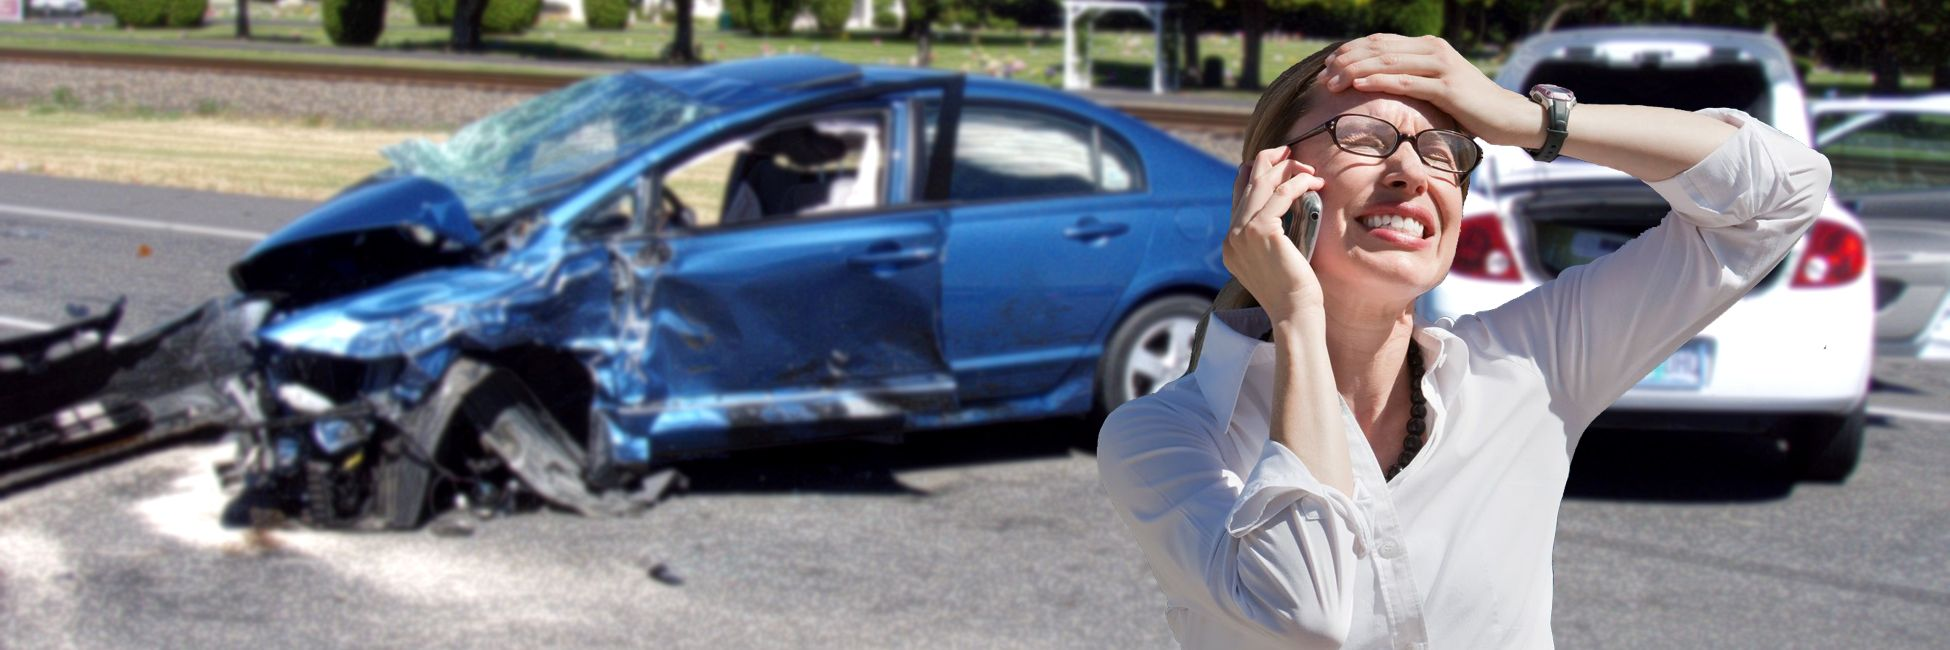 Top Ten Causes of Auto Accidents in Houston, TX (With